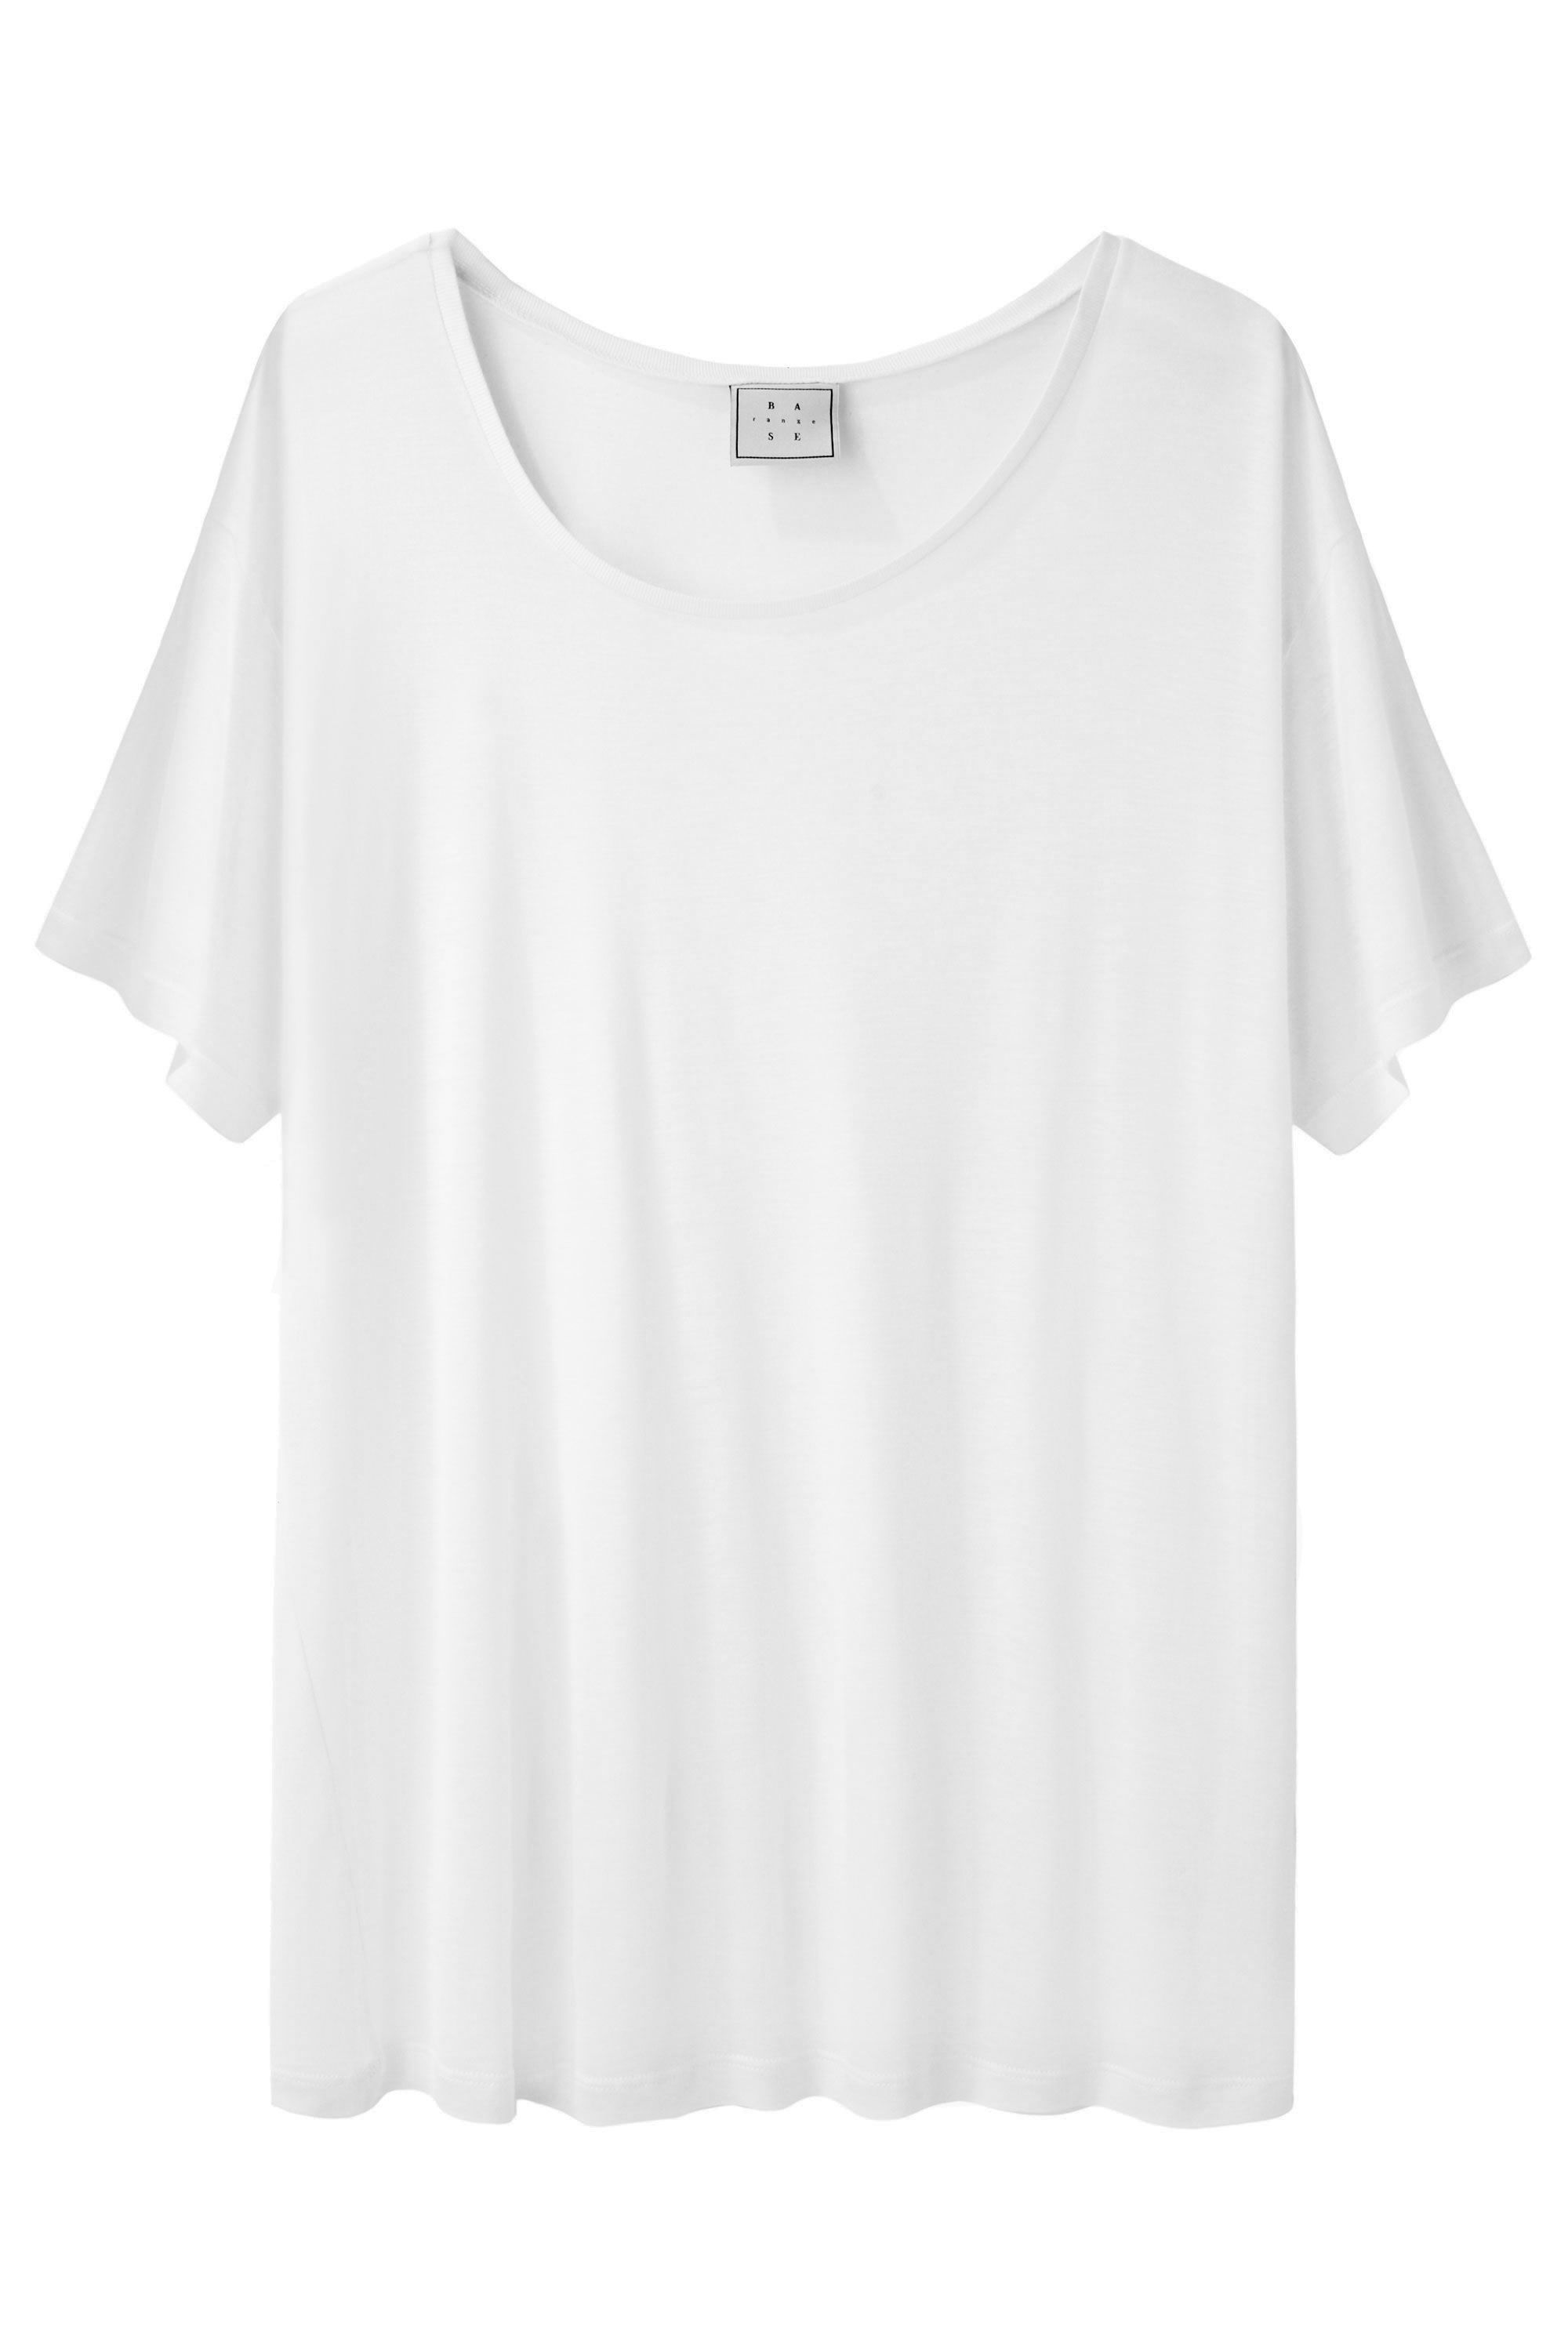 Plain White Tees: Editors' Share Their Favorites